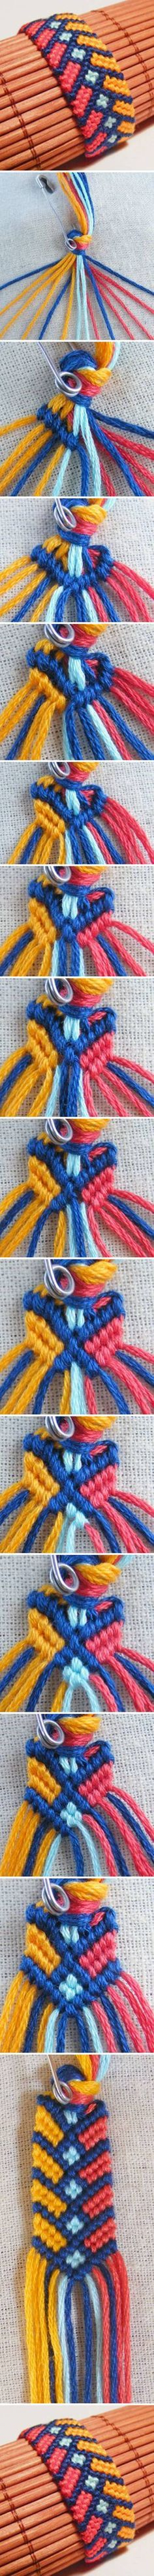 DIY Stylish Square Knot Macrame Bracelet #DIY #fashion #bracelet #Macrame